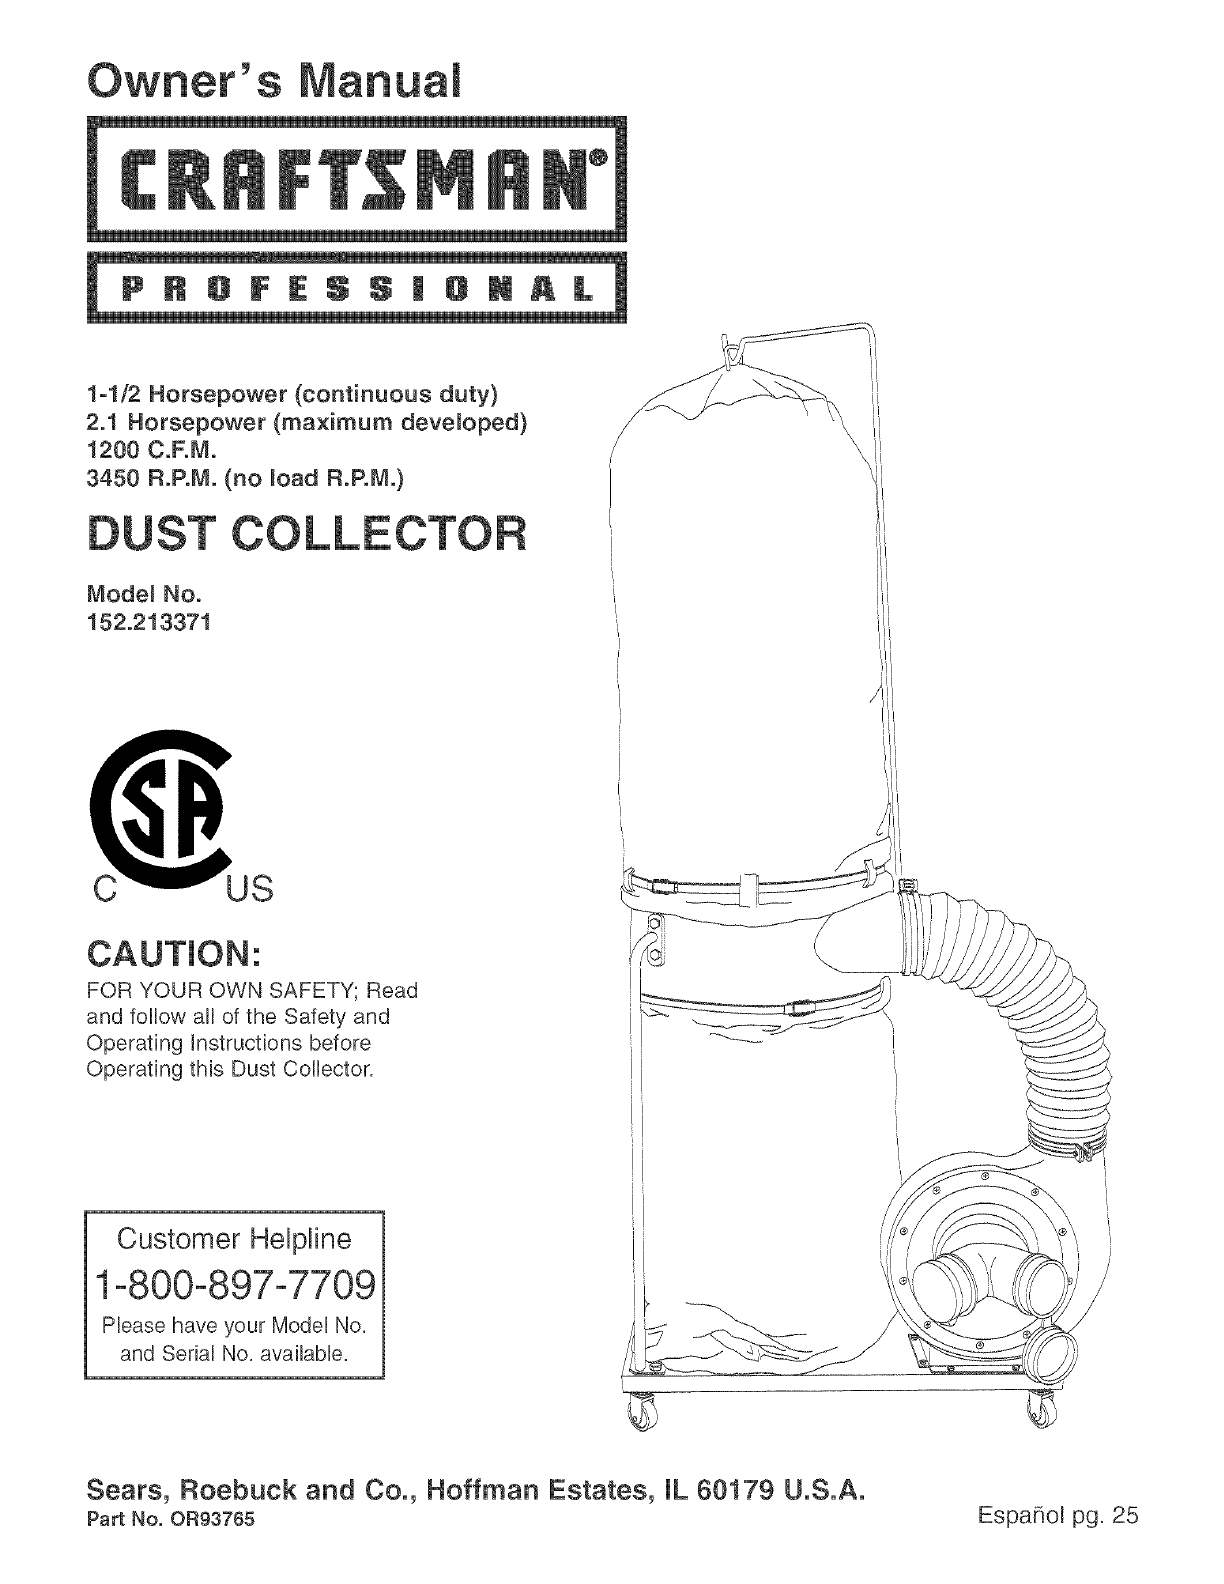 craftsman dust collector 152 213371 user guide manualsonline com rh kitchen manualsonline com Craftsman 1 HP Dust Collector Craftsman Table Saw Dust Collector